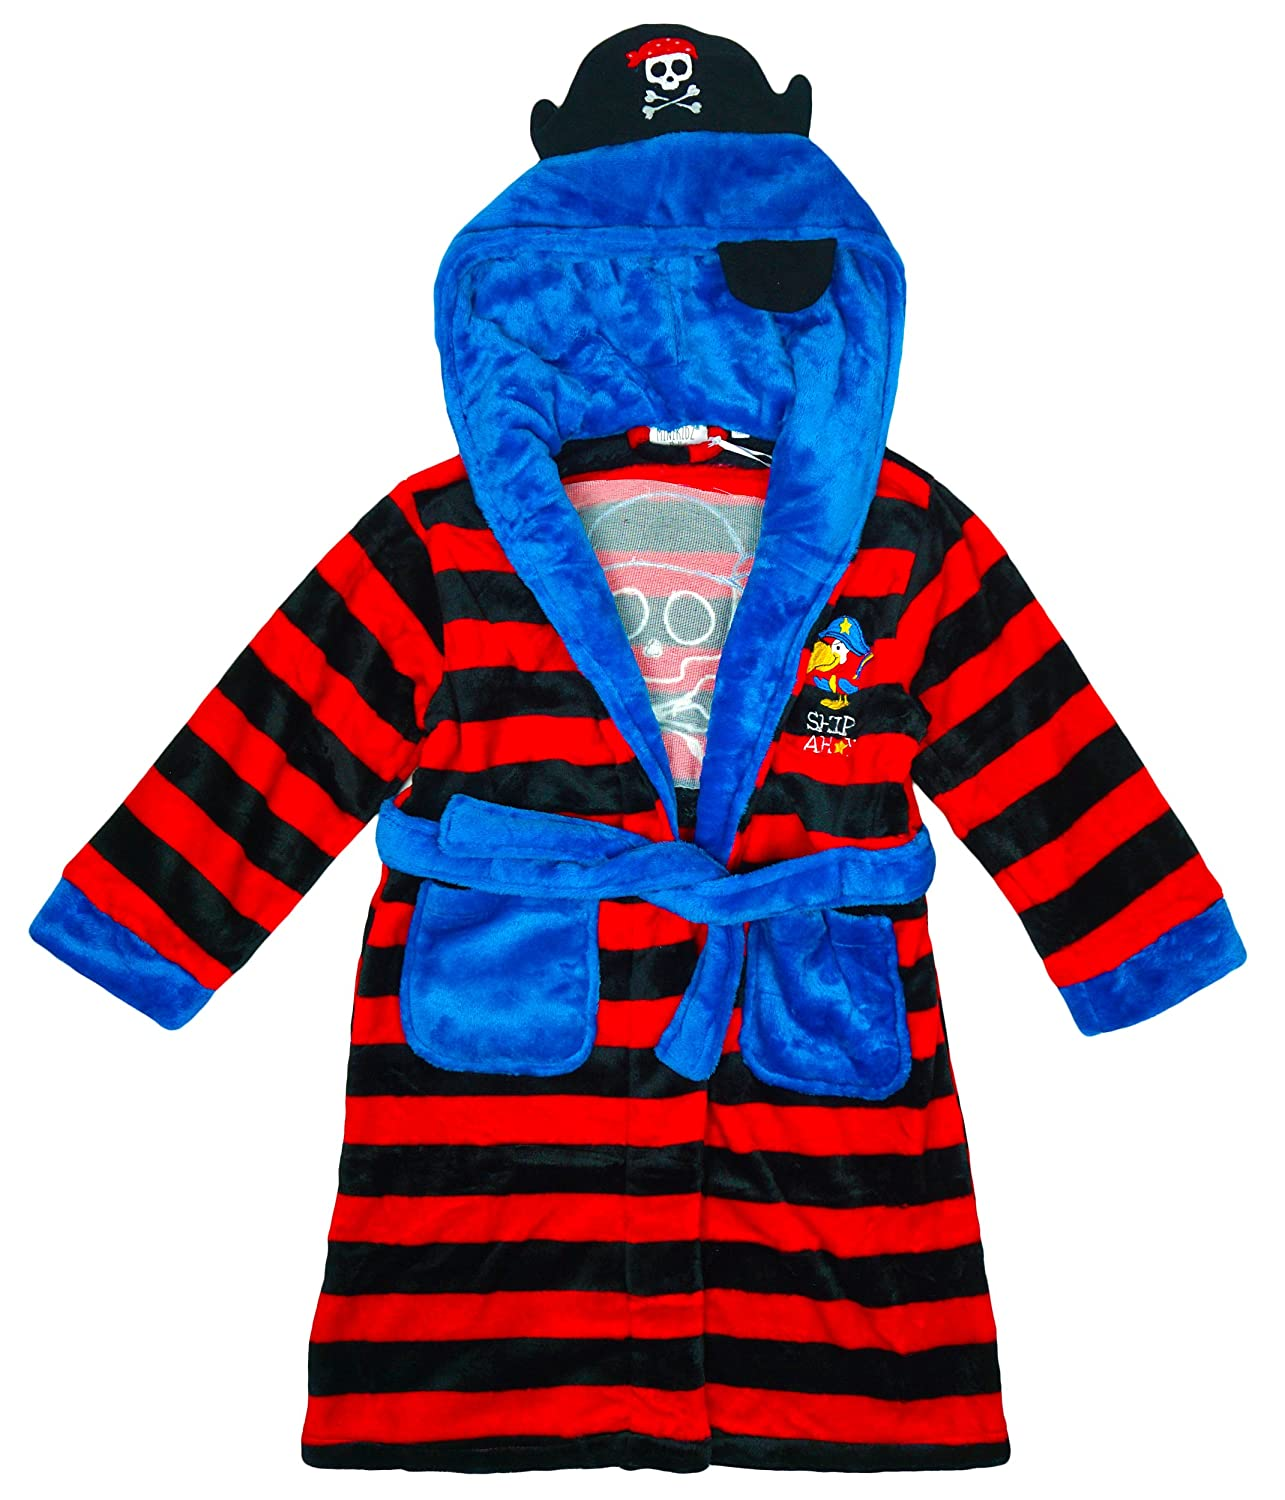 Boys PIRATE Ship Ahoy Stripe Hooded Dressing Gown Fleece Bathrobe sizes from 2 to 5 Years